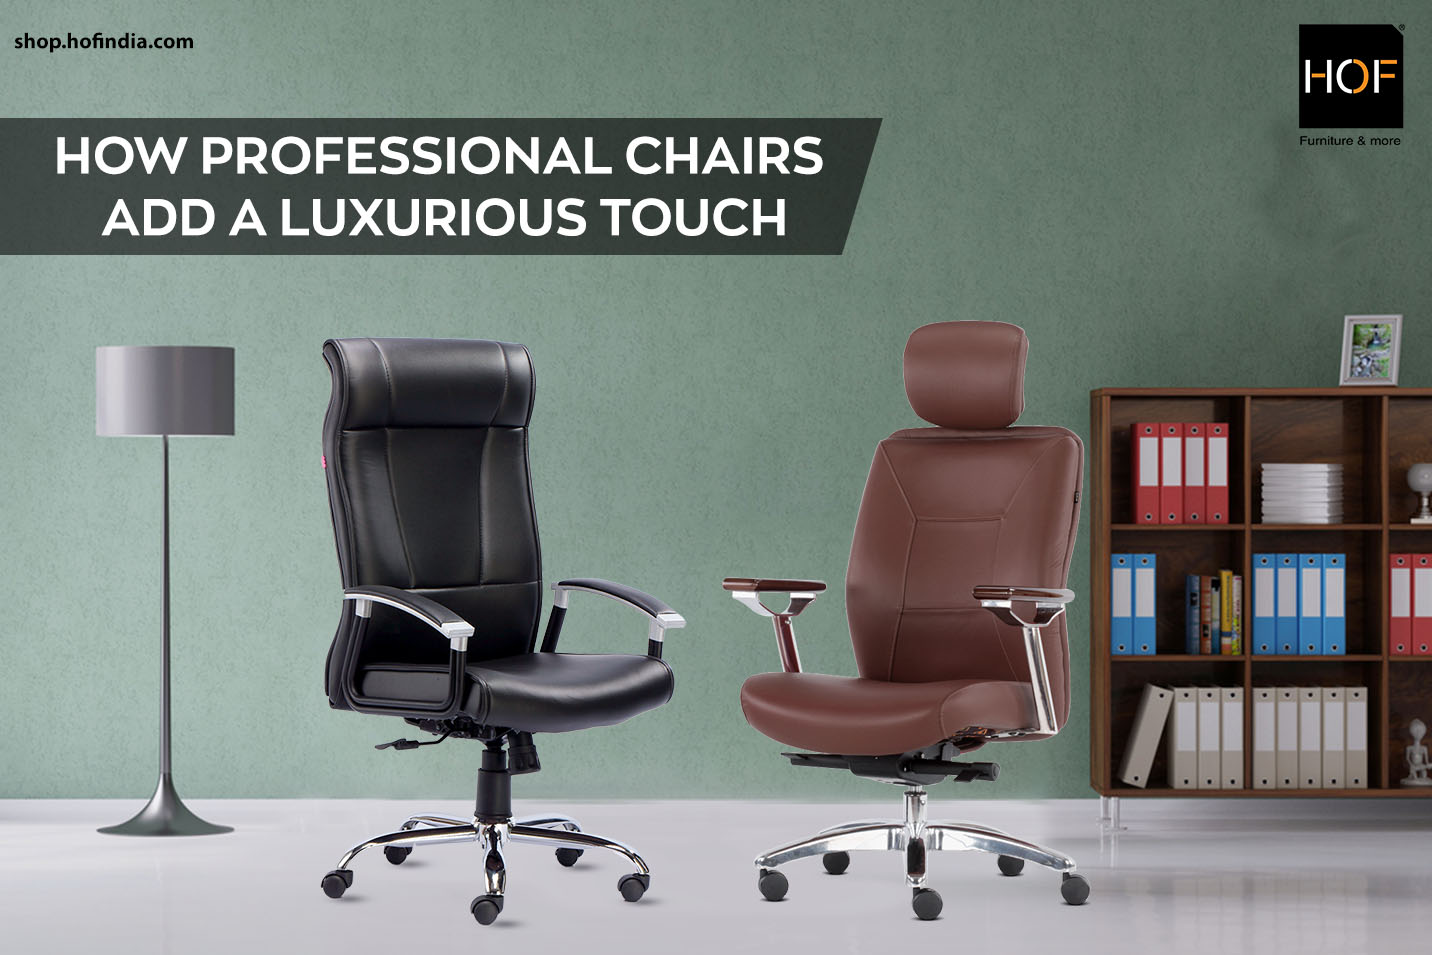 Professional Chairs are form of a luxury